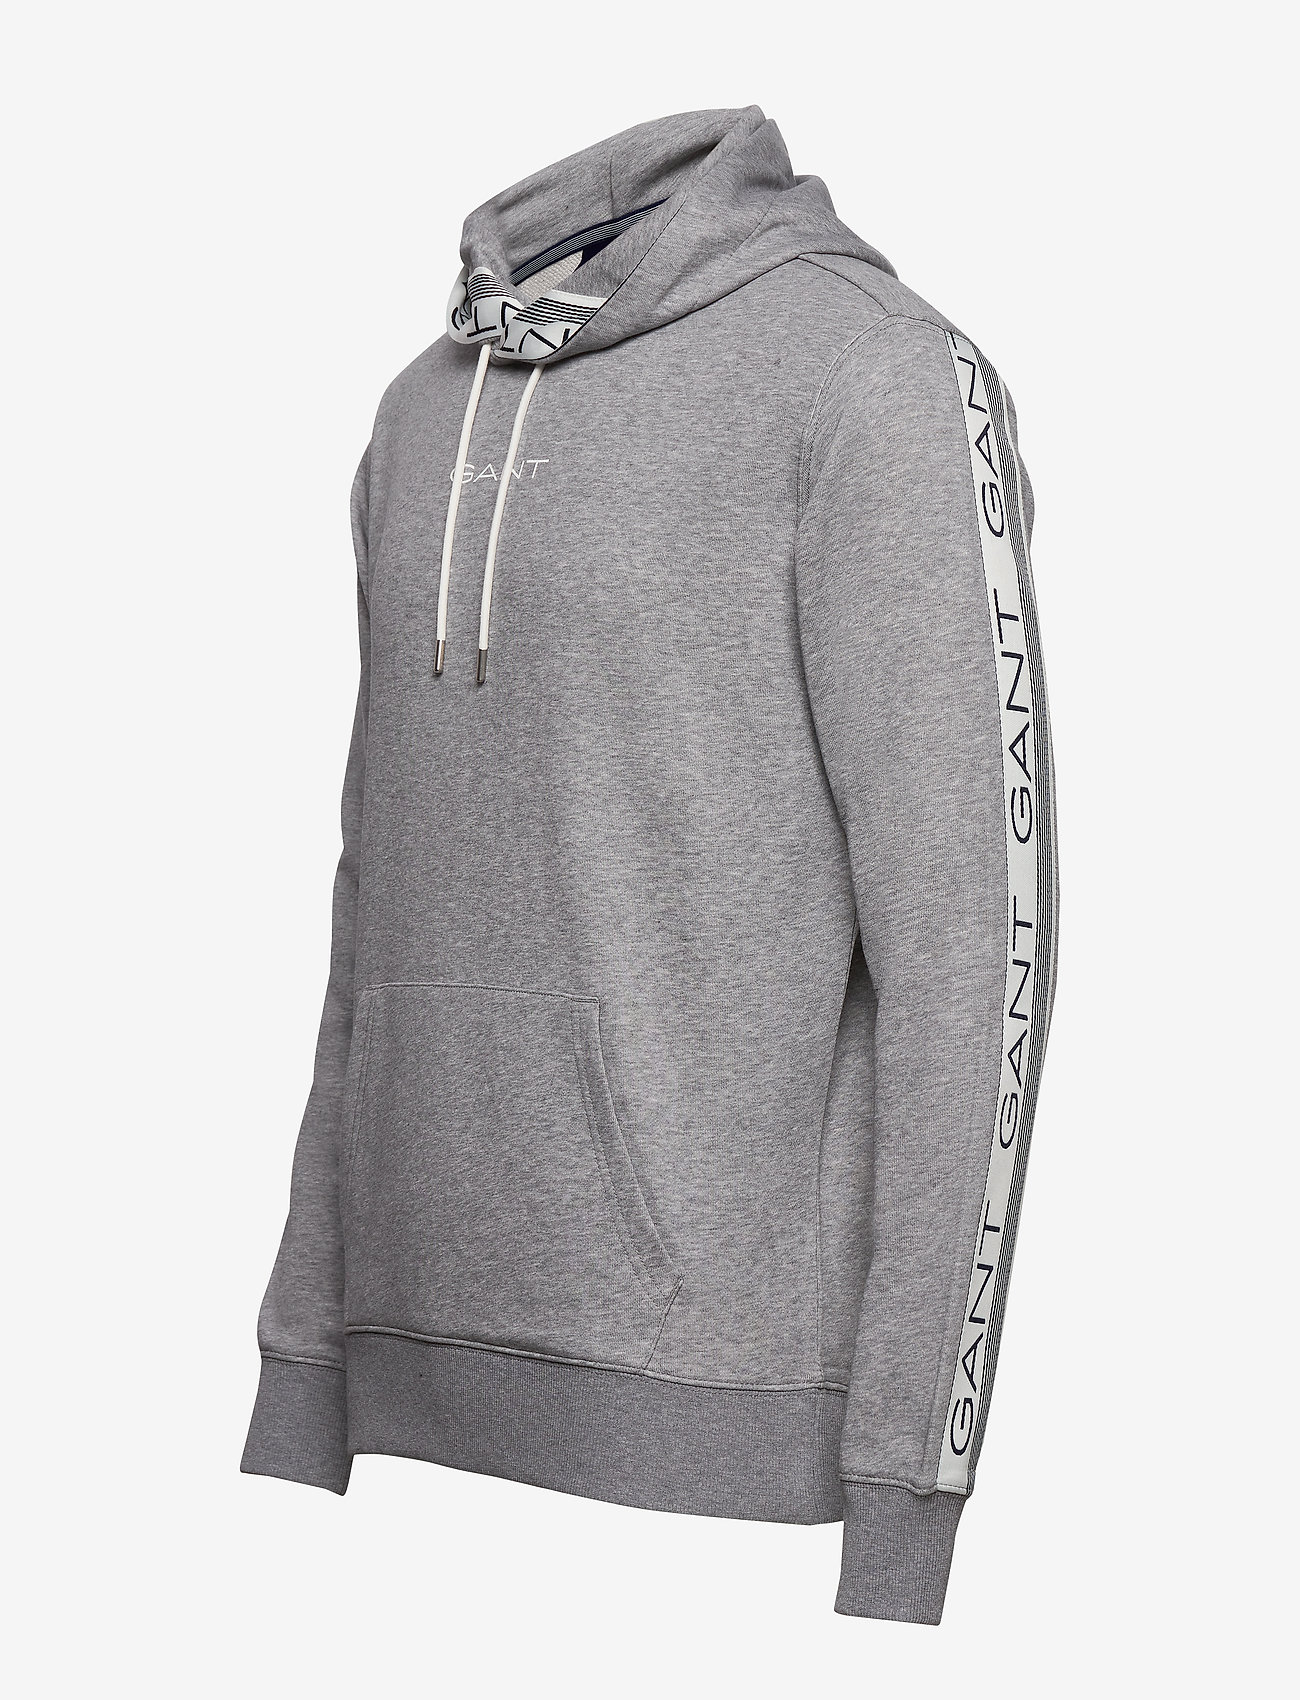 GANT D1. 13 STRIPES SWEAT HOODIE - Sweatshirts GREY MELANGE - Menn Klær